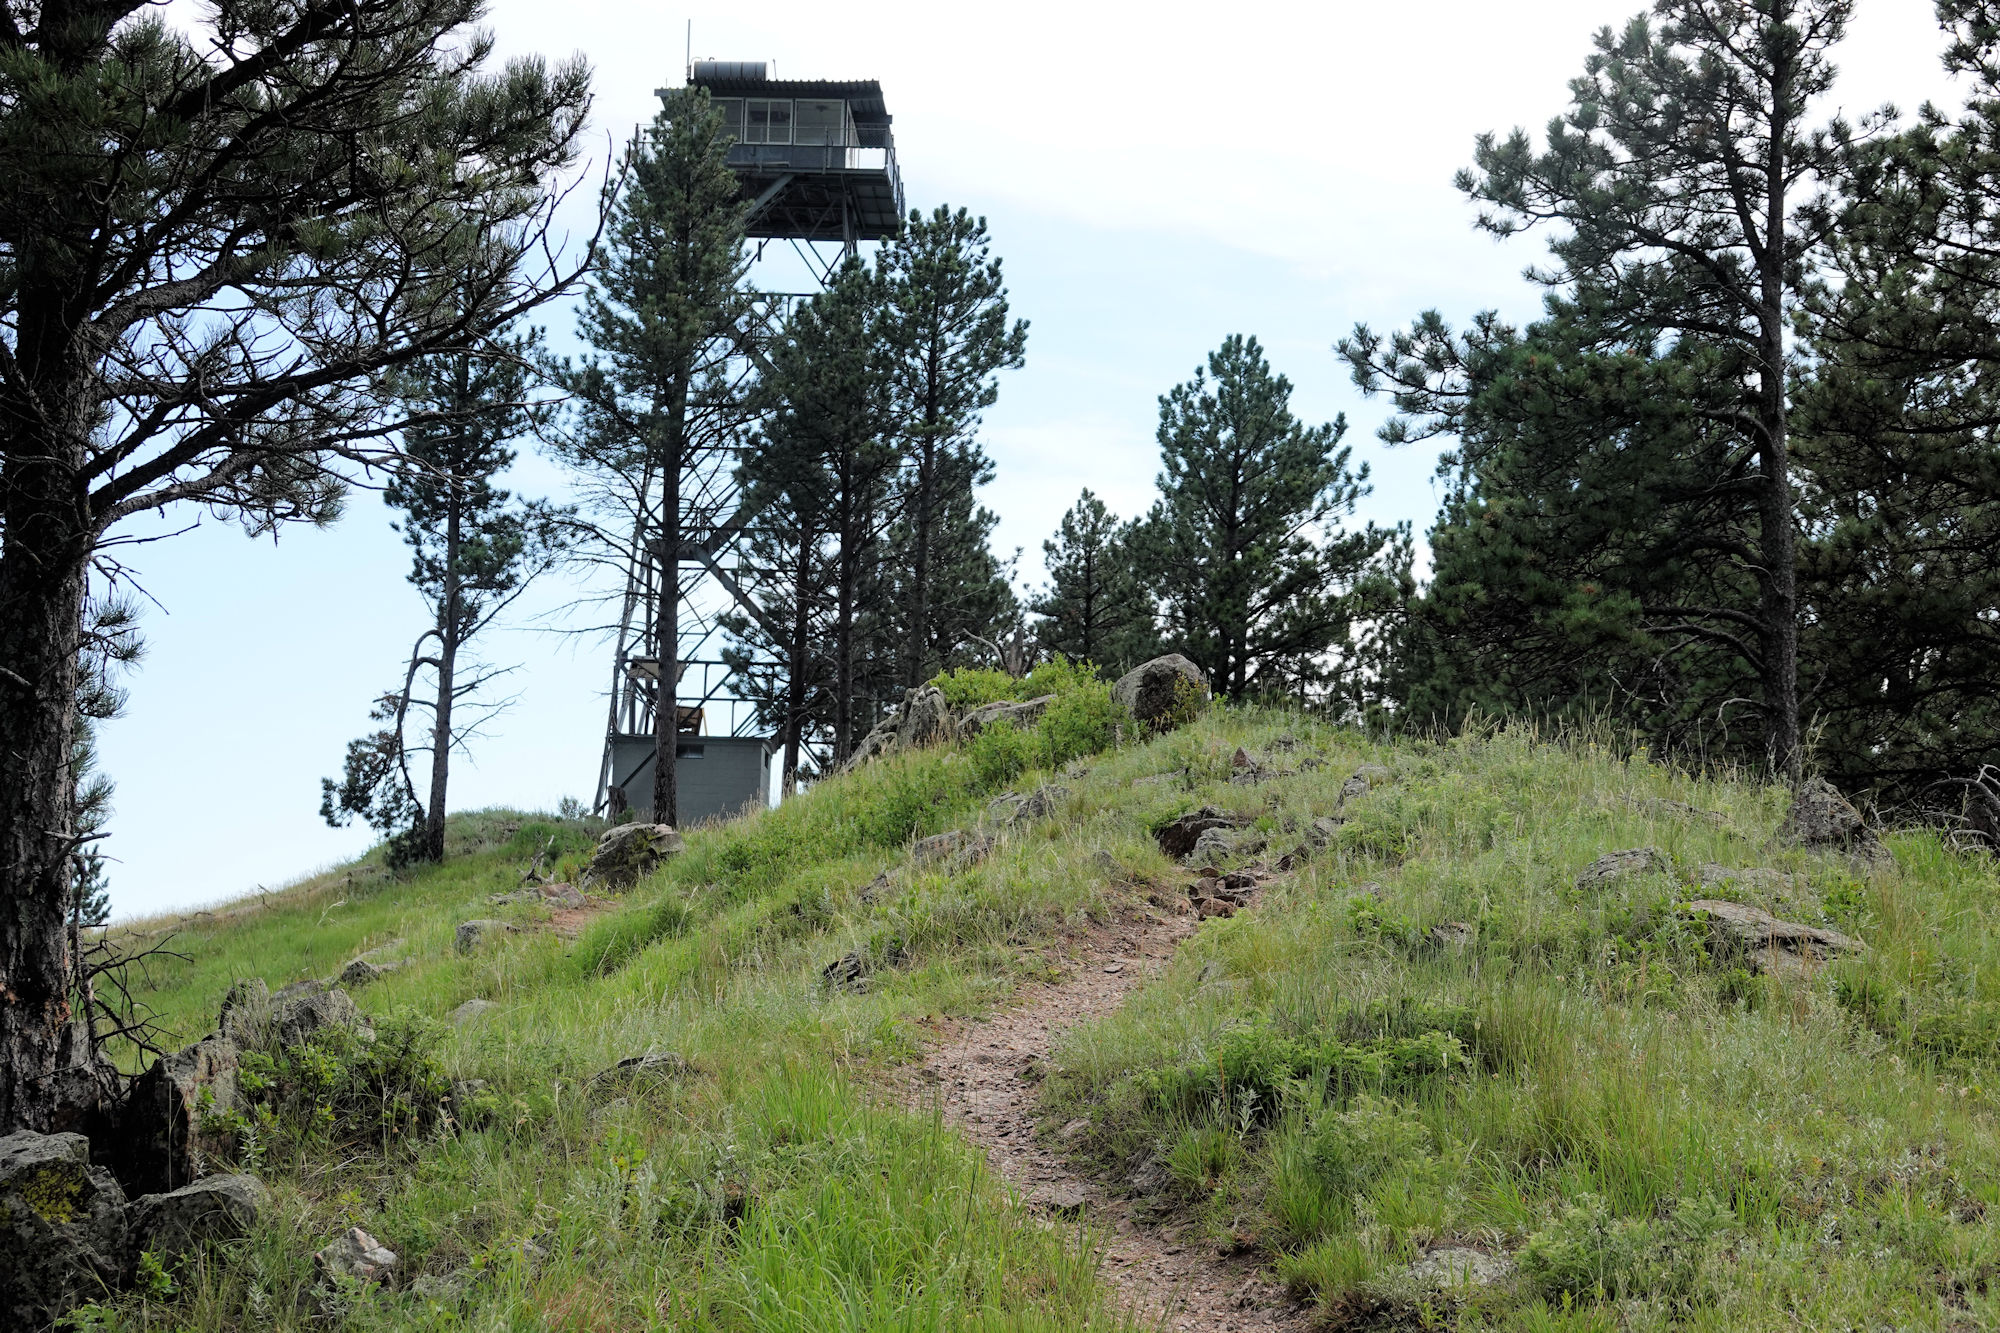 photo: Rankin Ridge - Fire tower - 7-16-18. Photo by Jim Walla.